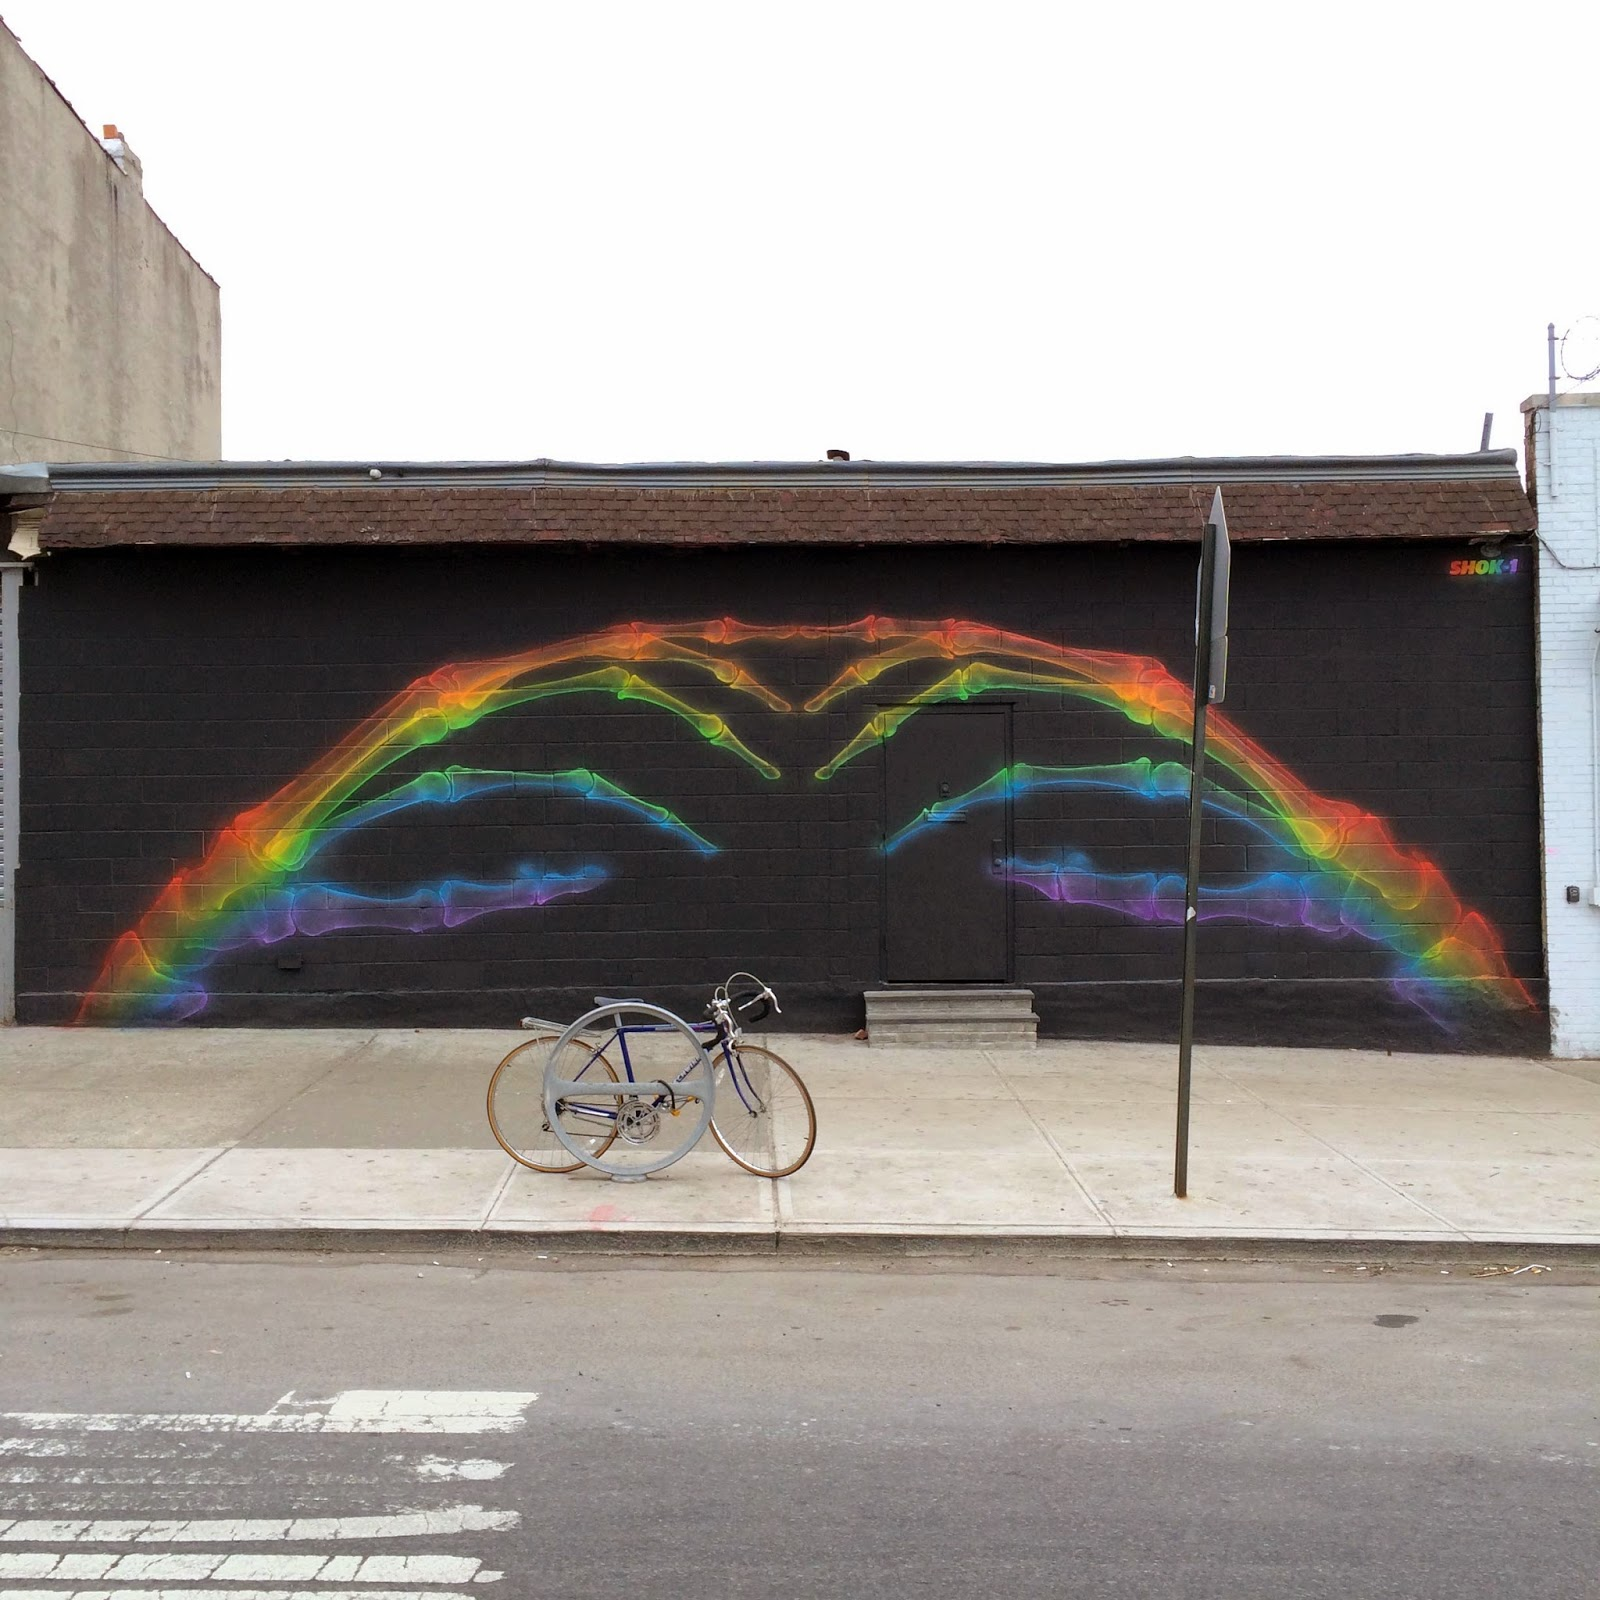 Freshly arrived from London, Shok-1 is now in New York City where he spent a few hours working on this sweet new piece.